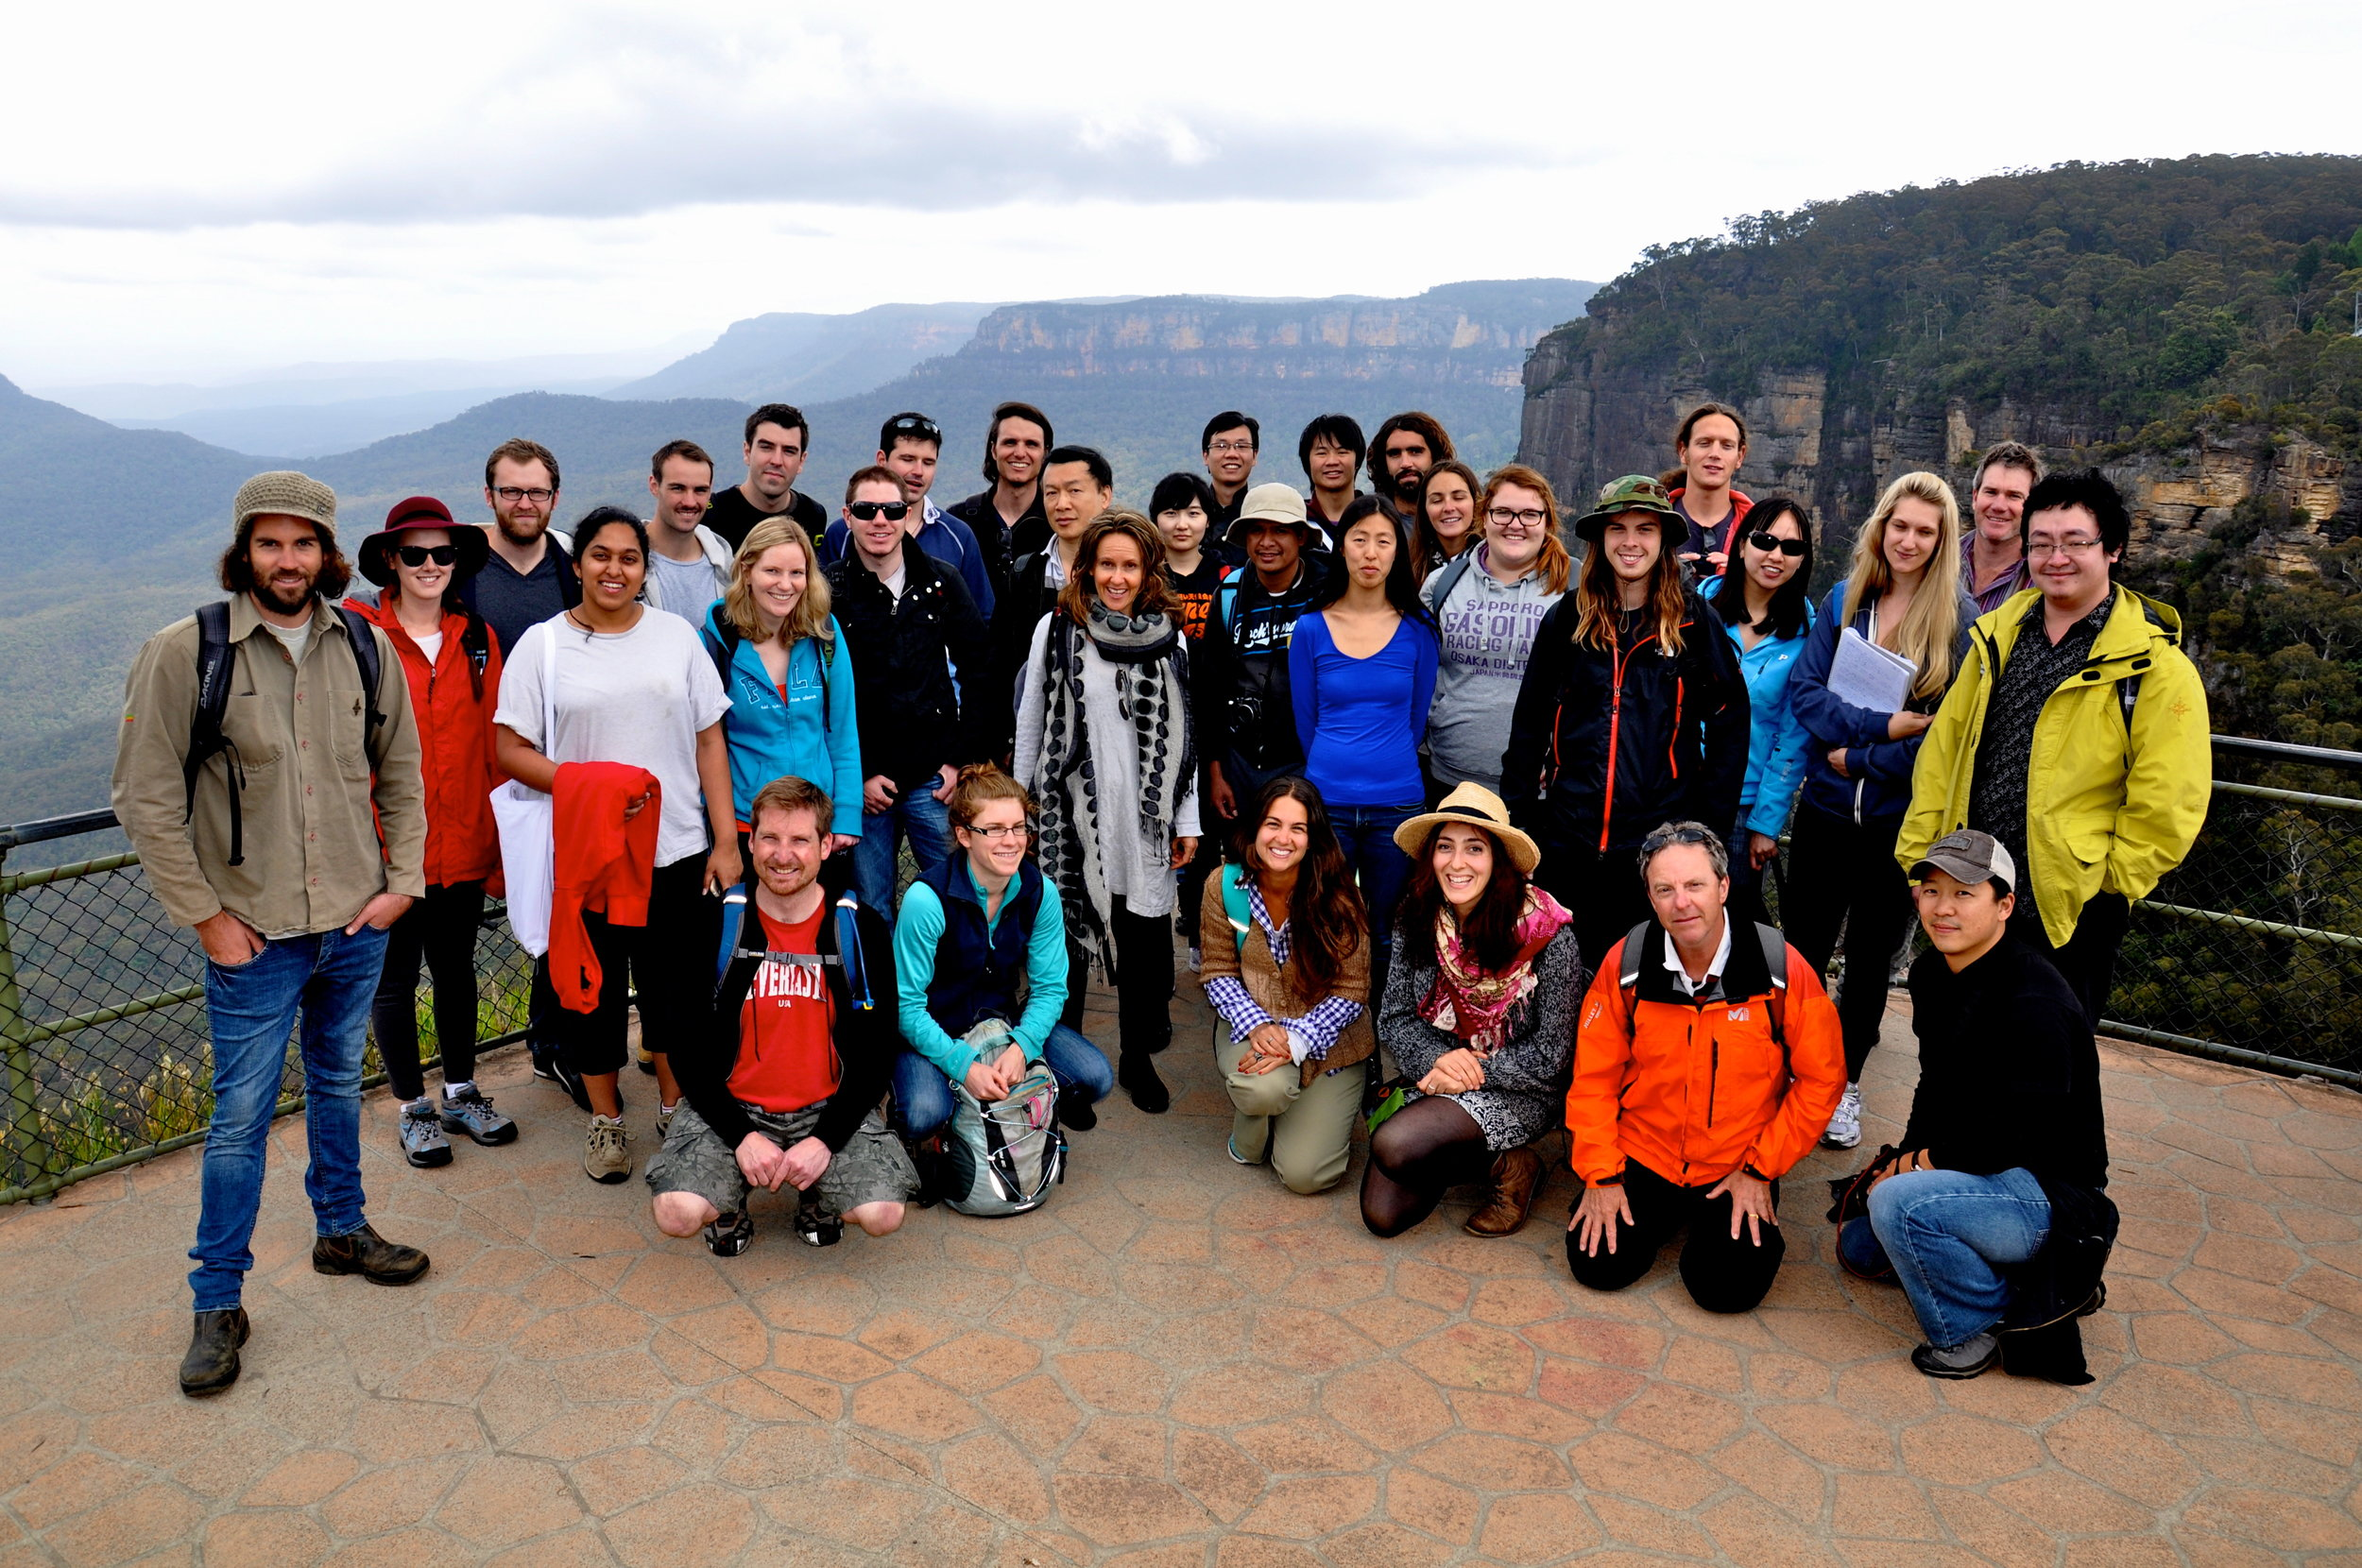 Students from the Master of Environmental Management program at the University of New South Wales, Sydney, studying protected area management in the Blue Mountains.